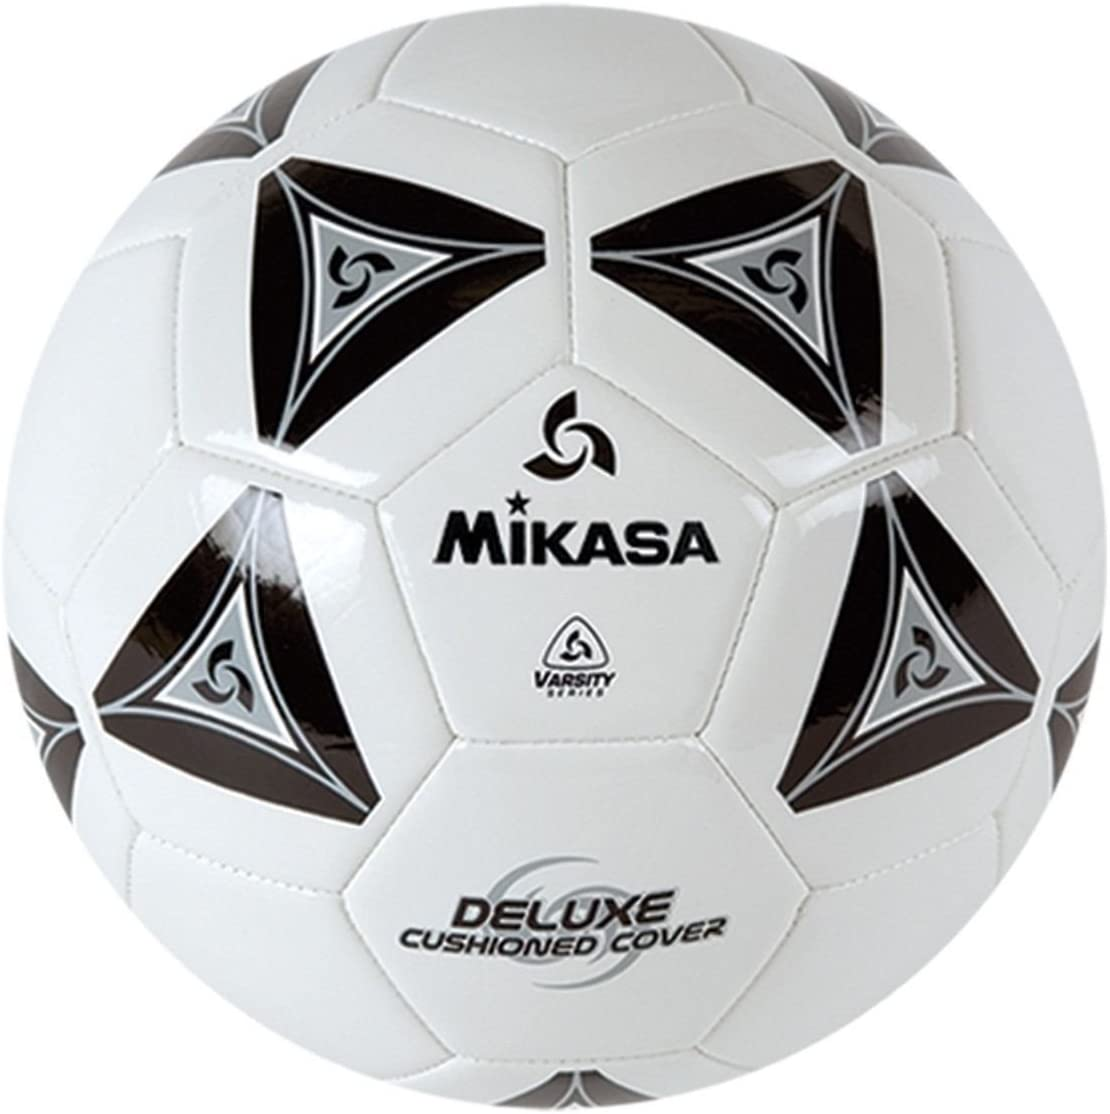 Mikasa Deluxe Soccer Football 2 Ply Butyl Bladderl Ball Size 5 White with Black